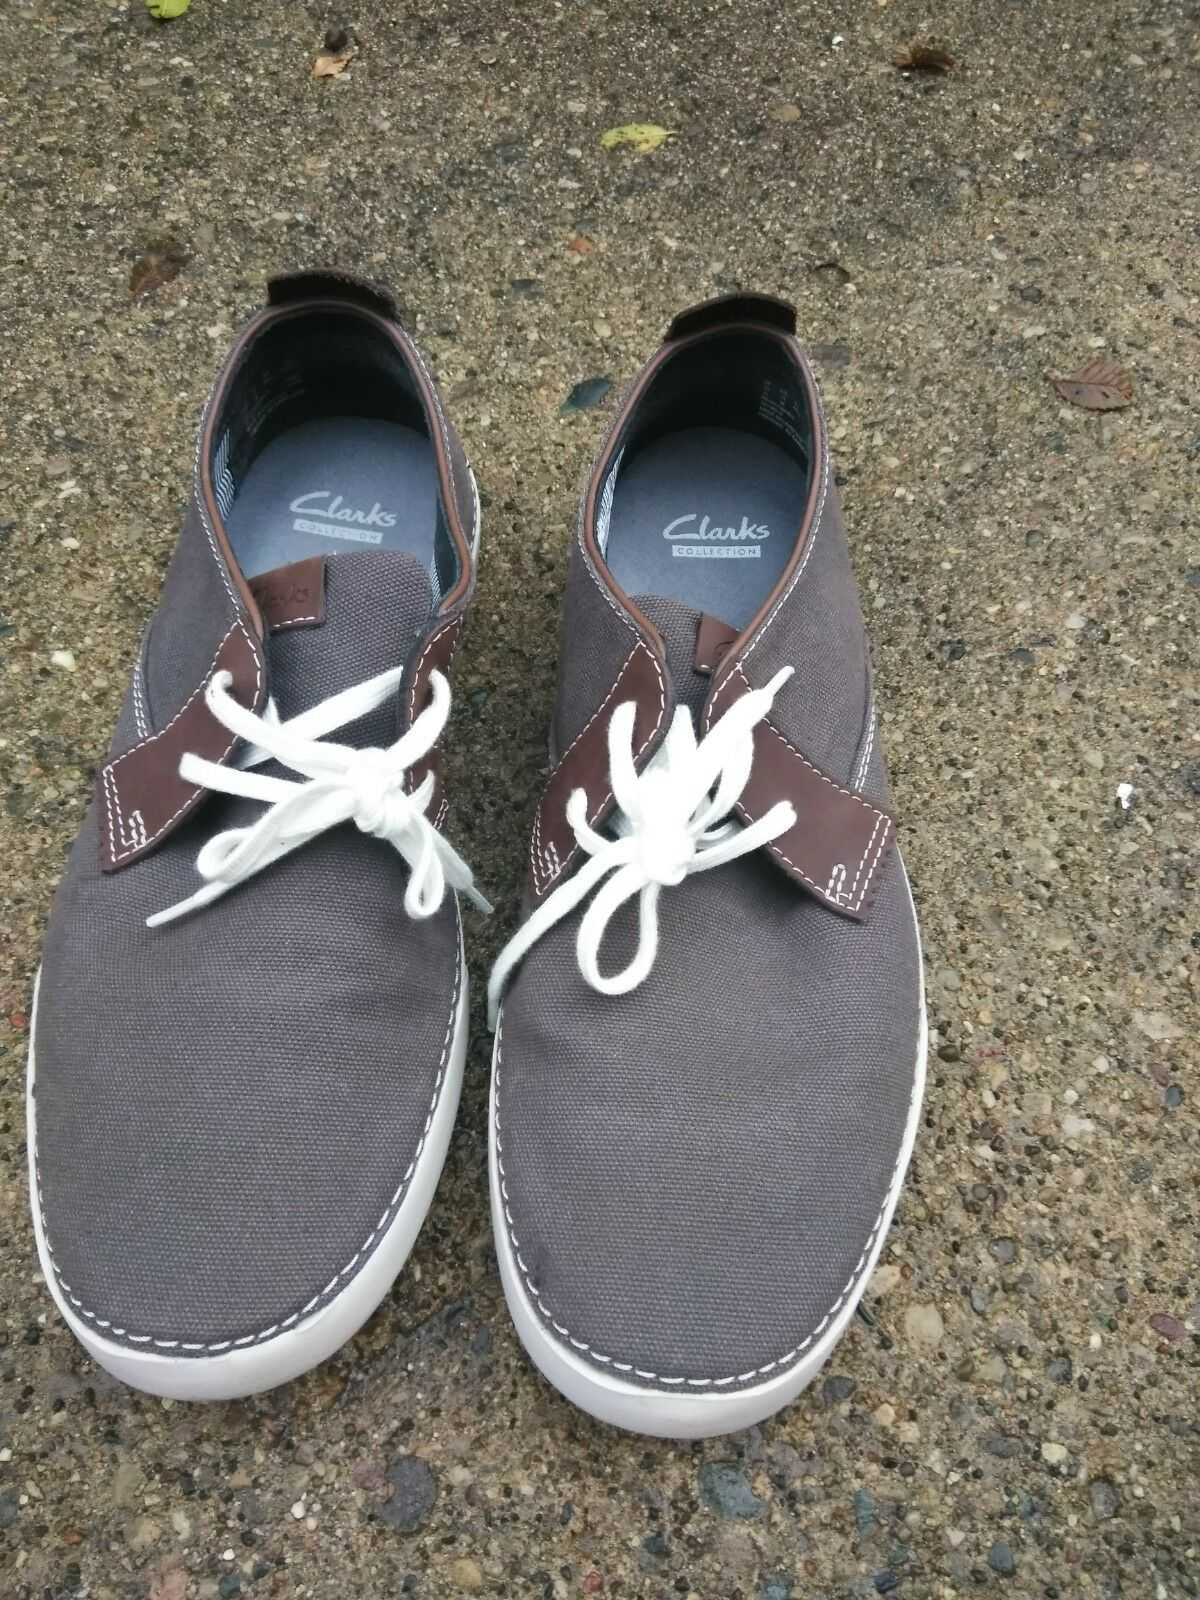 Clarks mens Sneakers size 11M